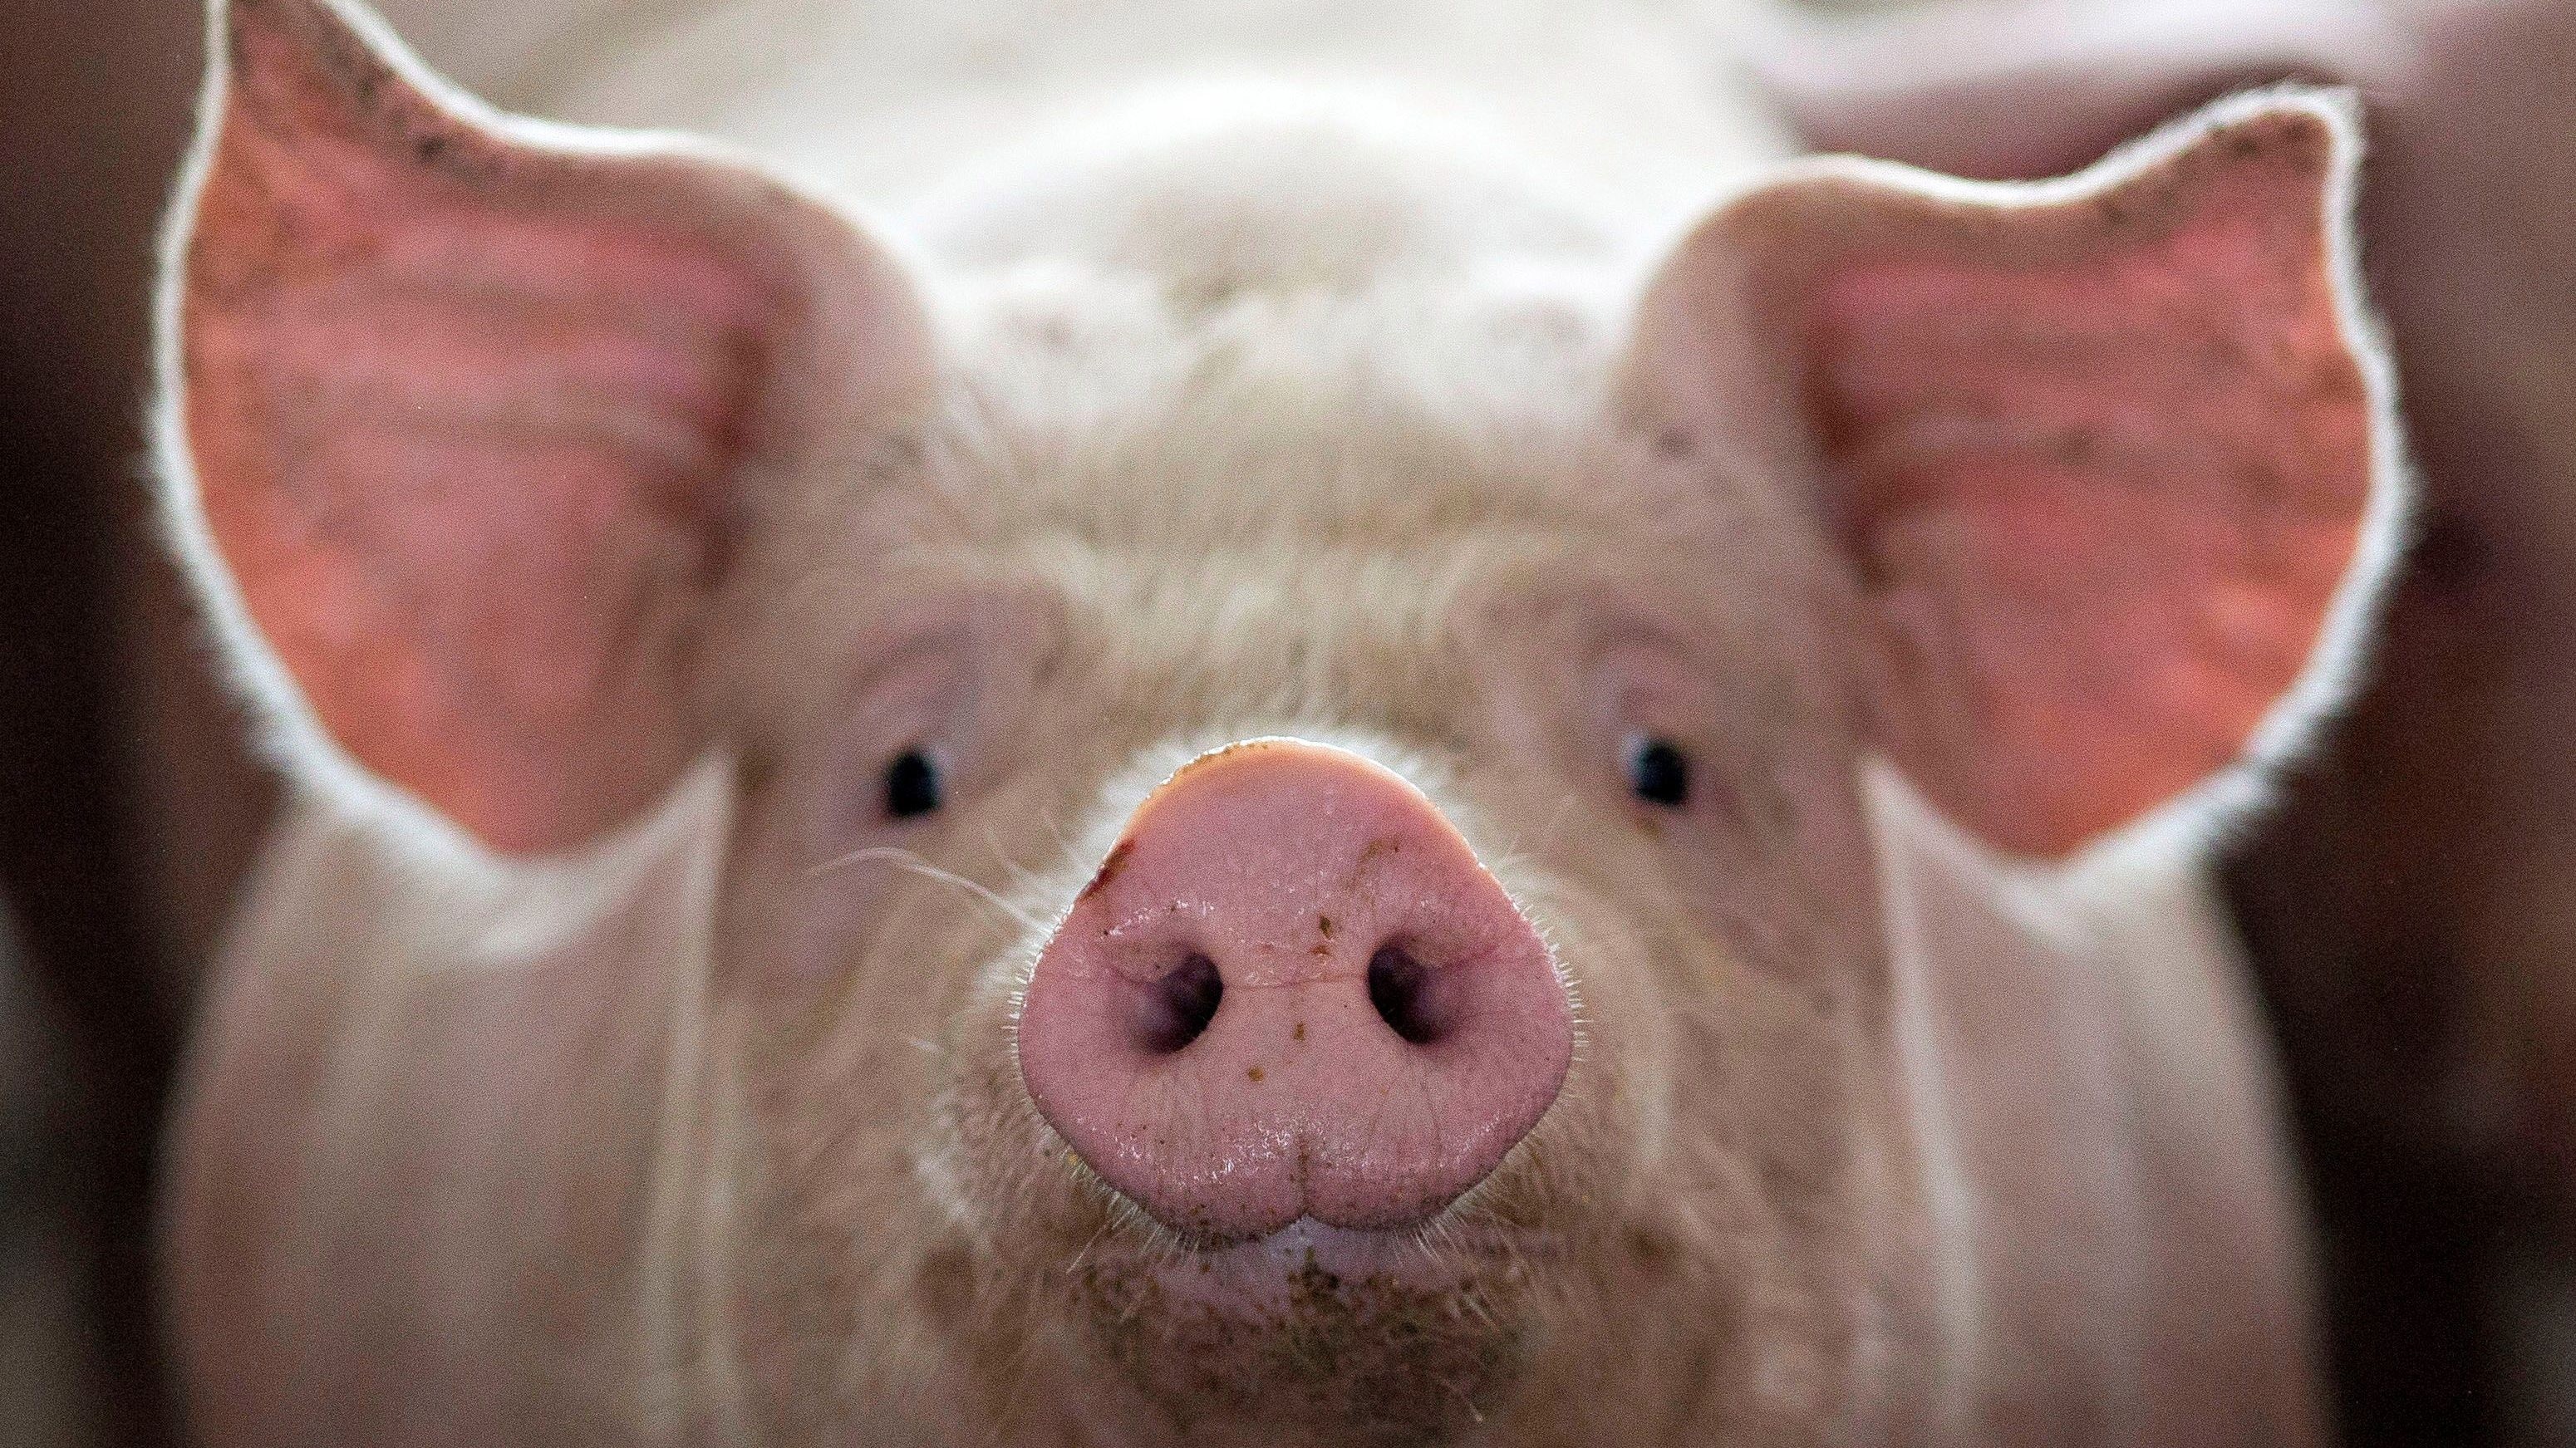 A pig, nearing market weight, stands in a pen at Duncan Farms in Polo, Illinois, U.S. April 9, 2018. Picture taken April 9, 2018. REUTERS/Daniel Acker TPX IMAGES OF THE DAY - RC1927A6CBE0